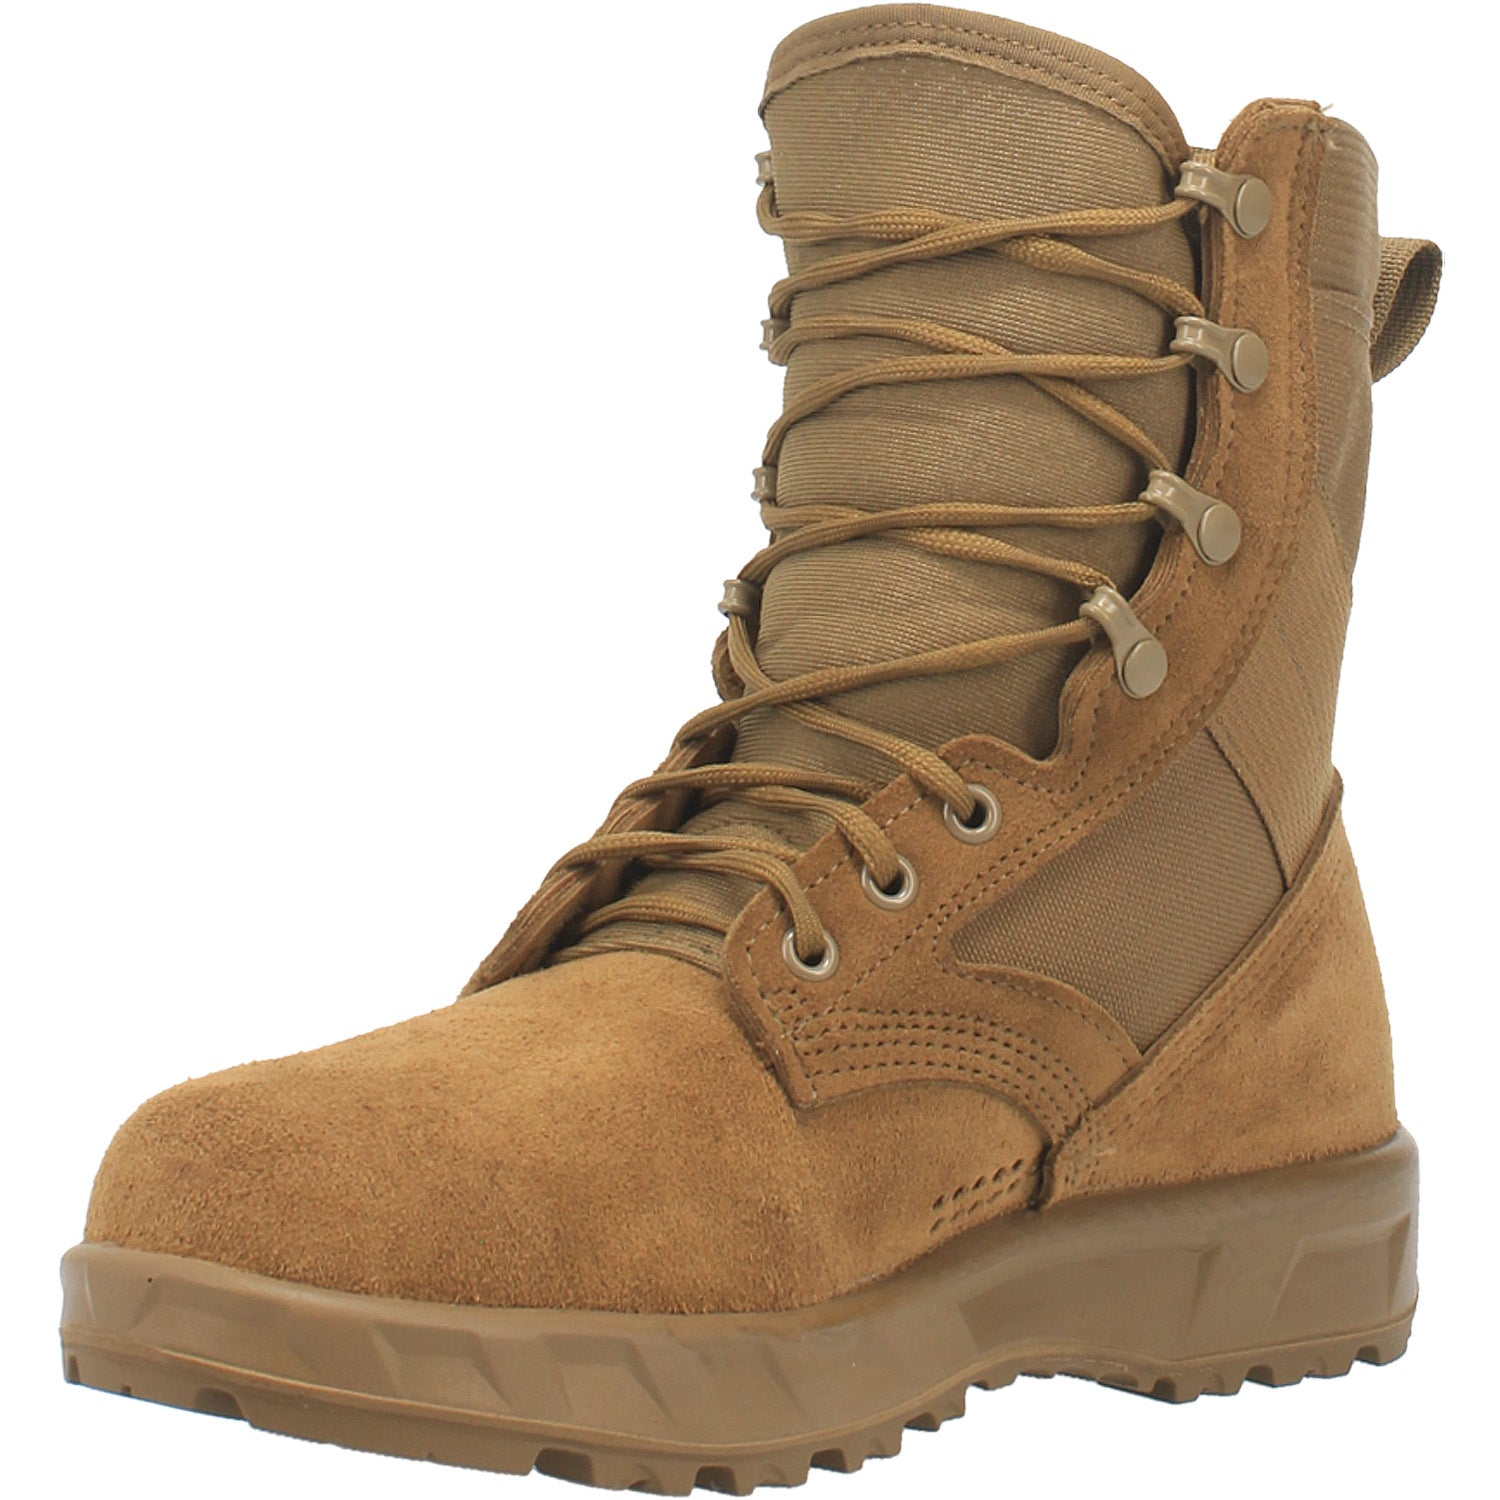 T2 Ultra Light Hot Weather Combat Boot 14940793274410